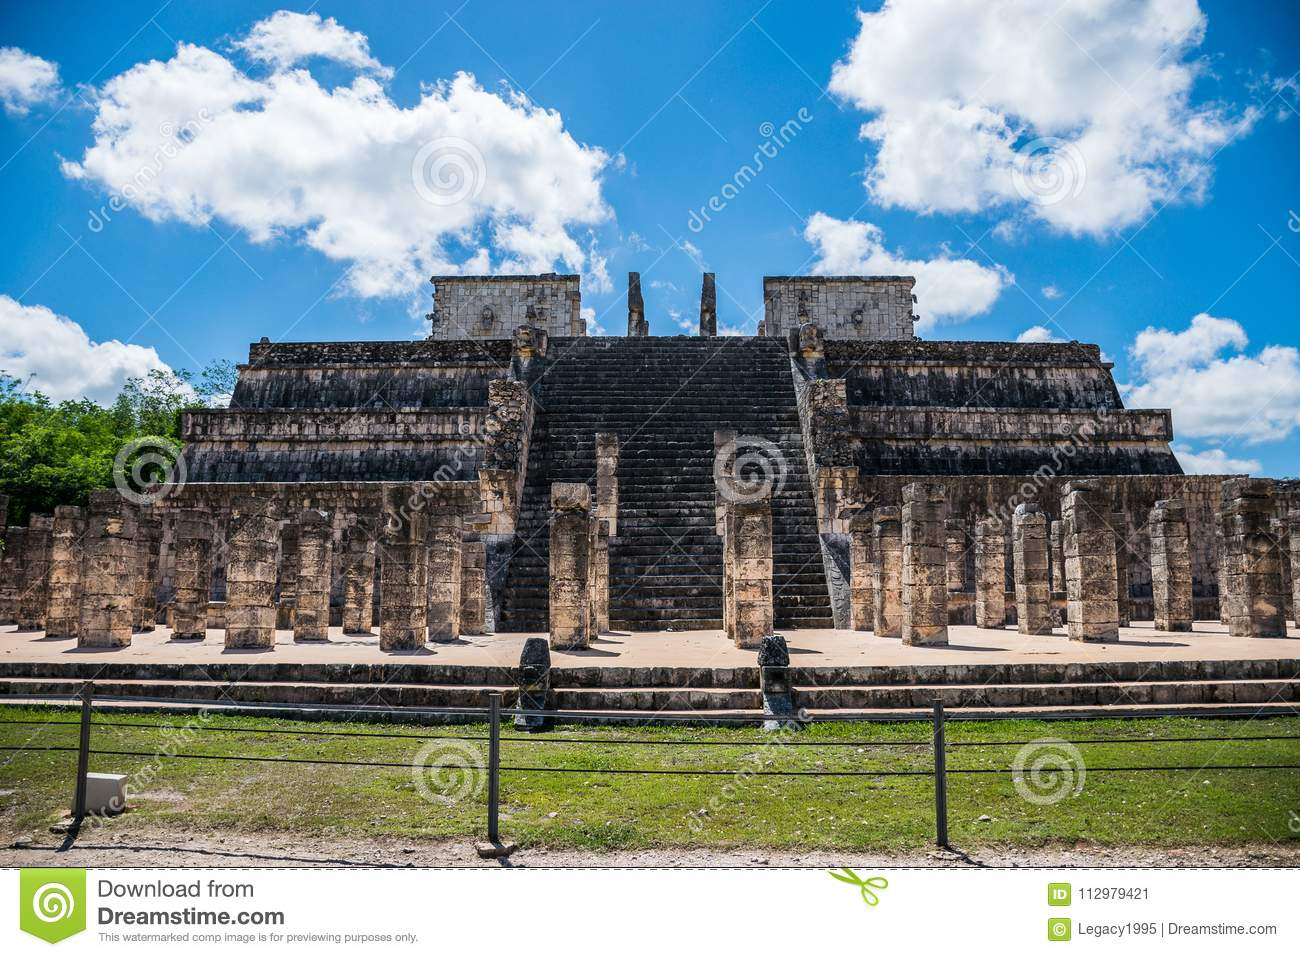 Temple of the Warriors and Thousand Columns at Chichen Itza, Mexico